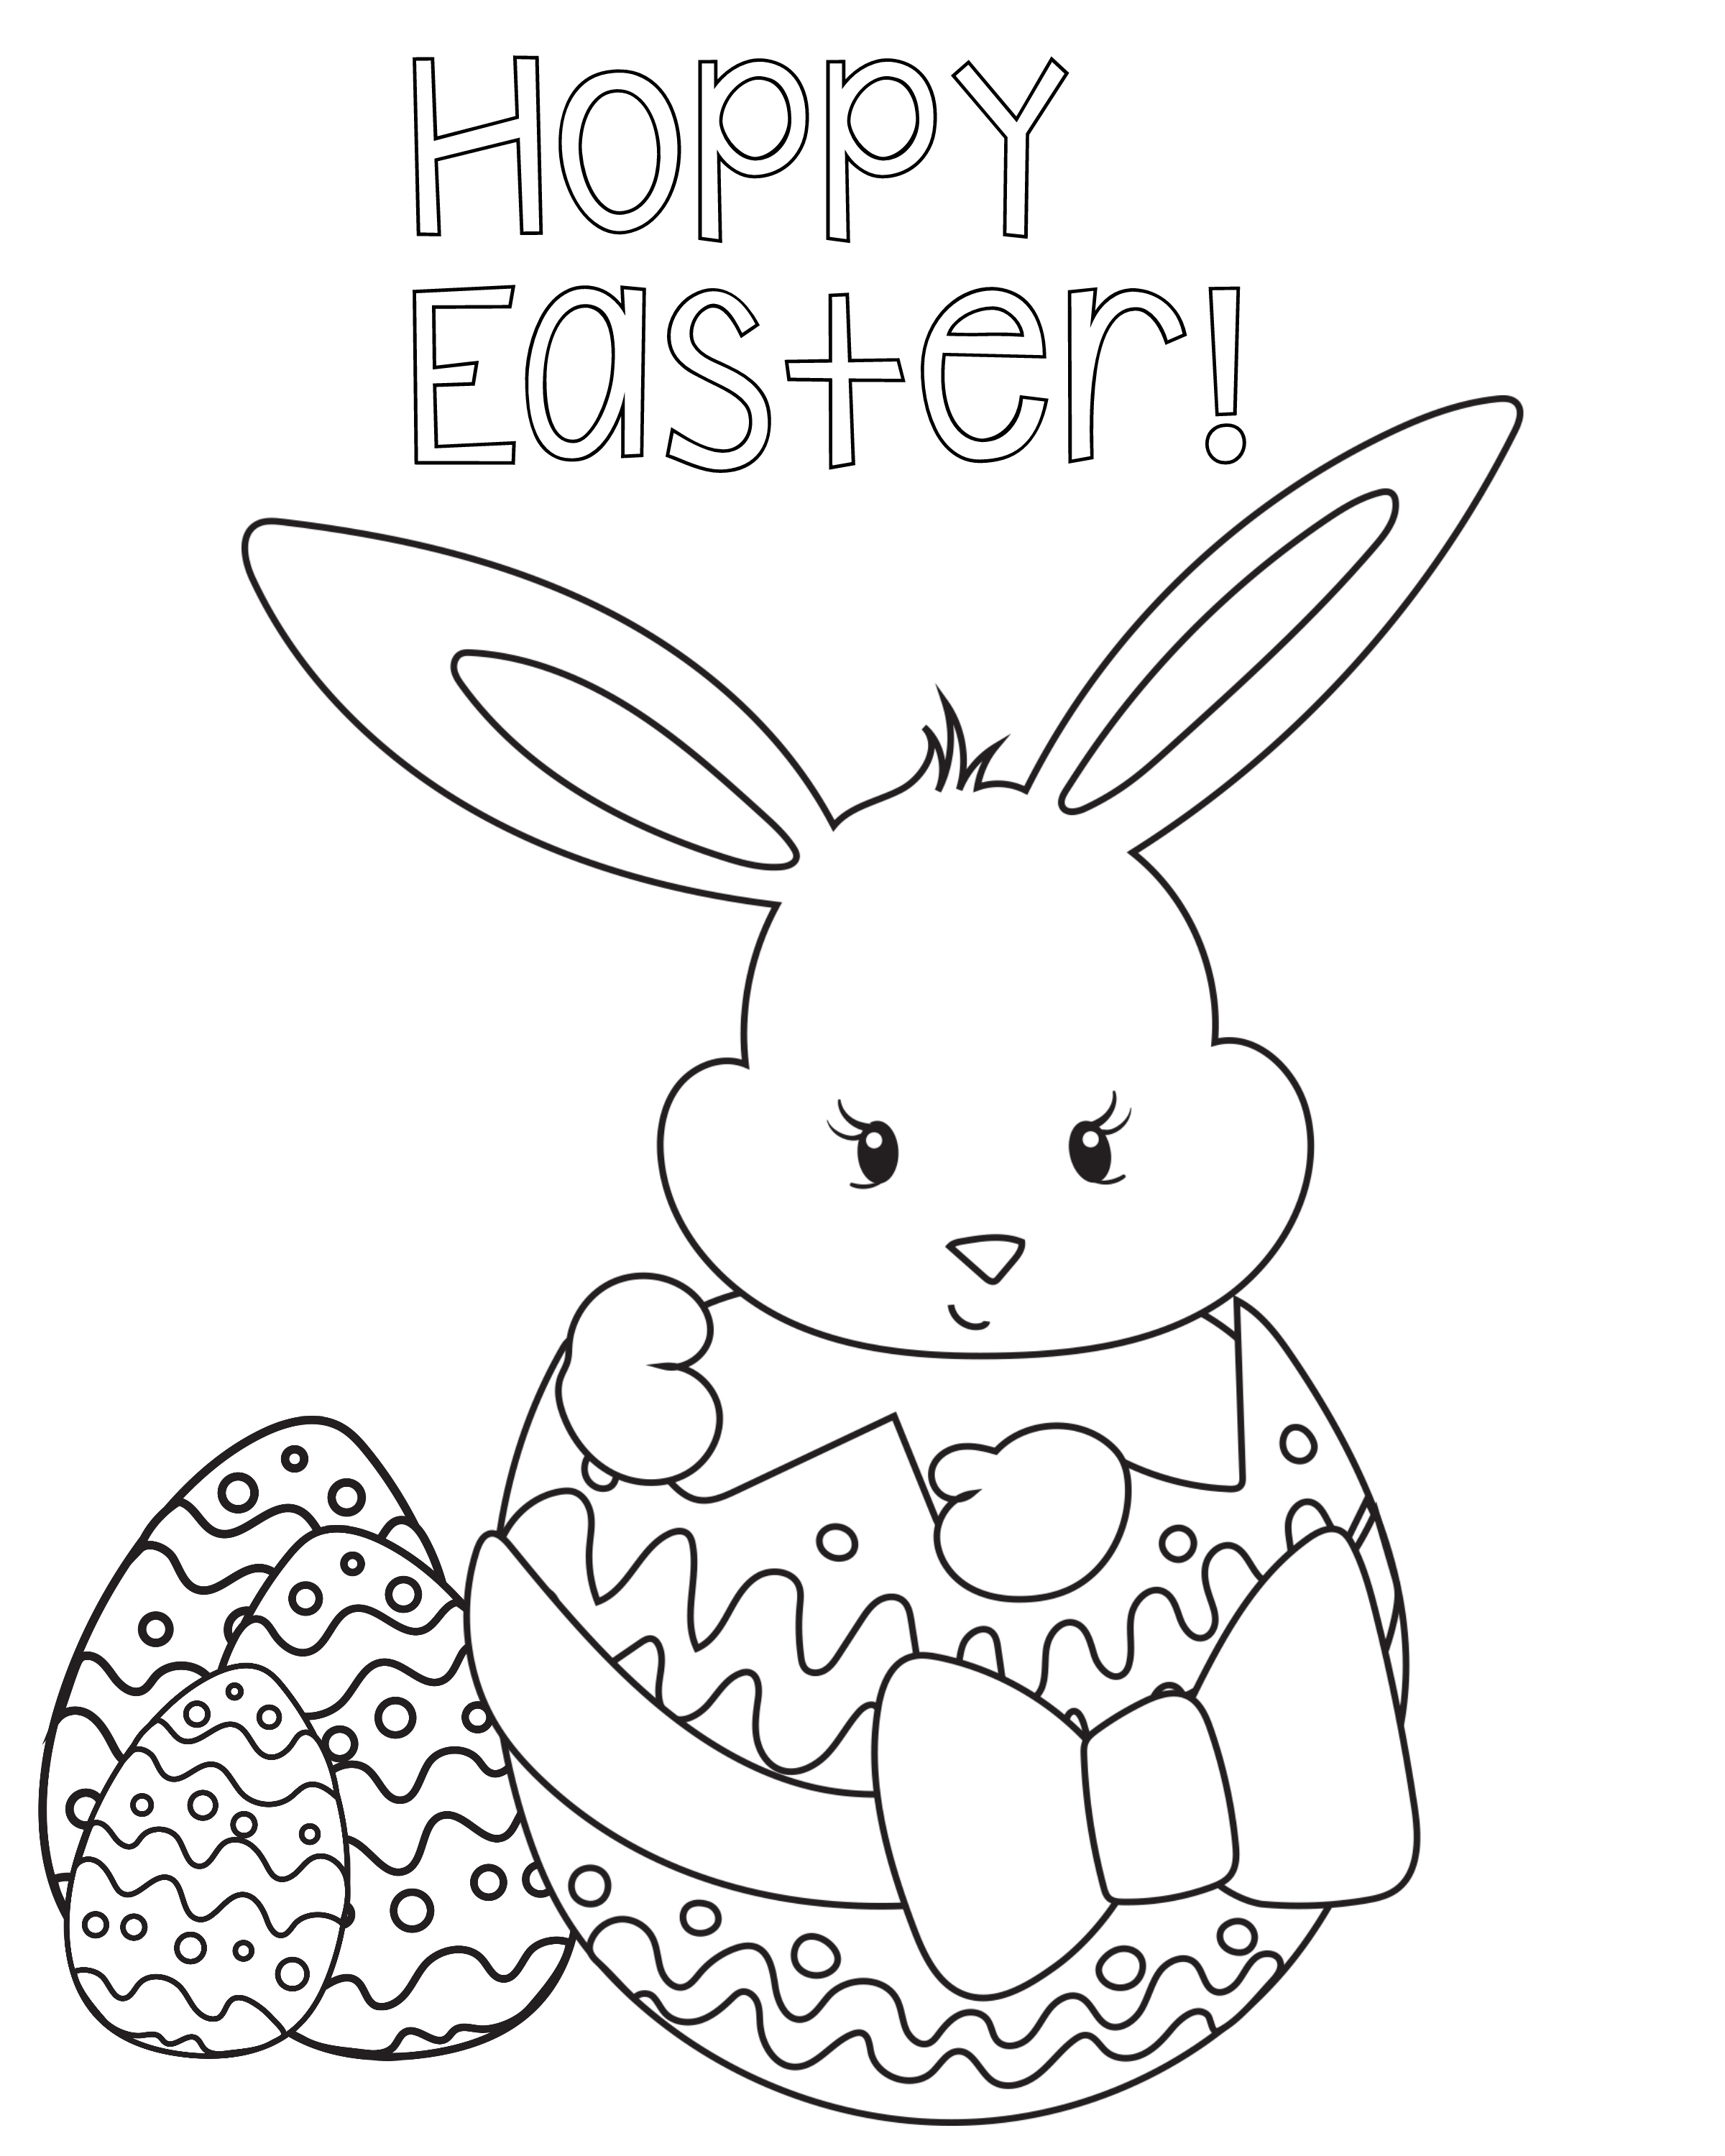 Happy Easter Printable Coloring Pages At Getdrawings